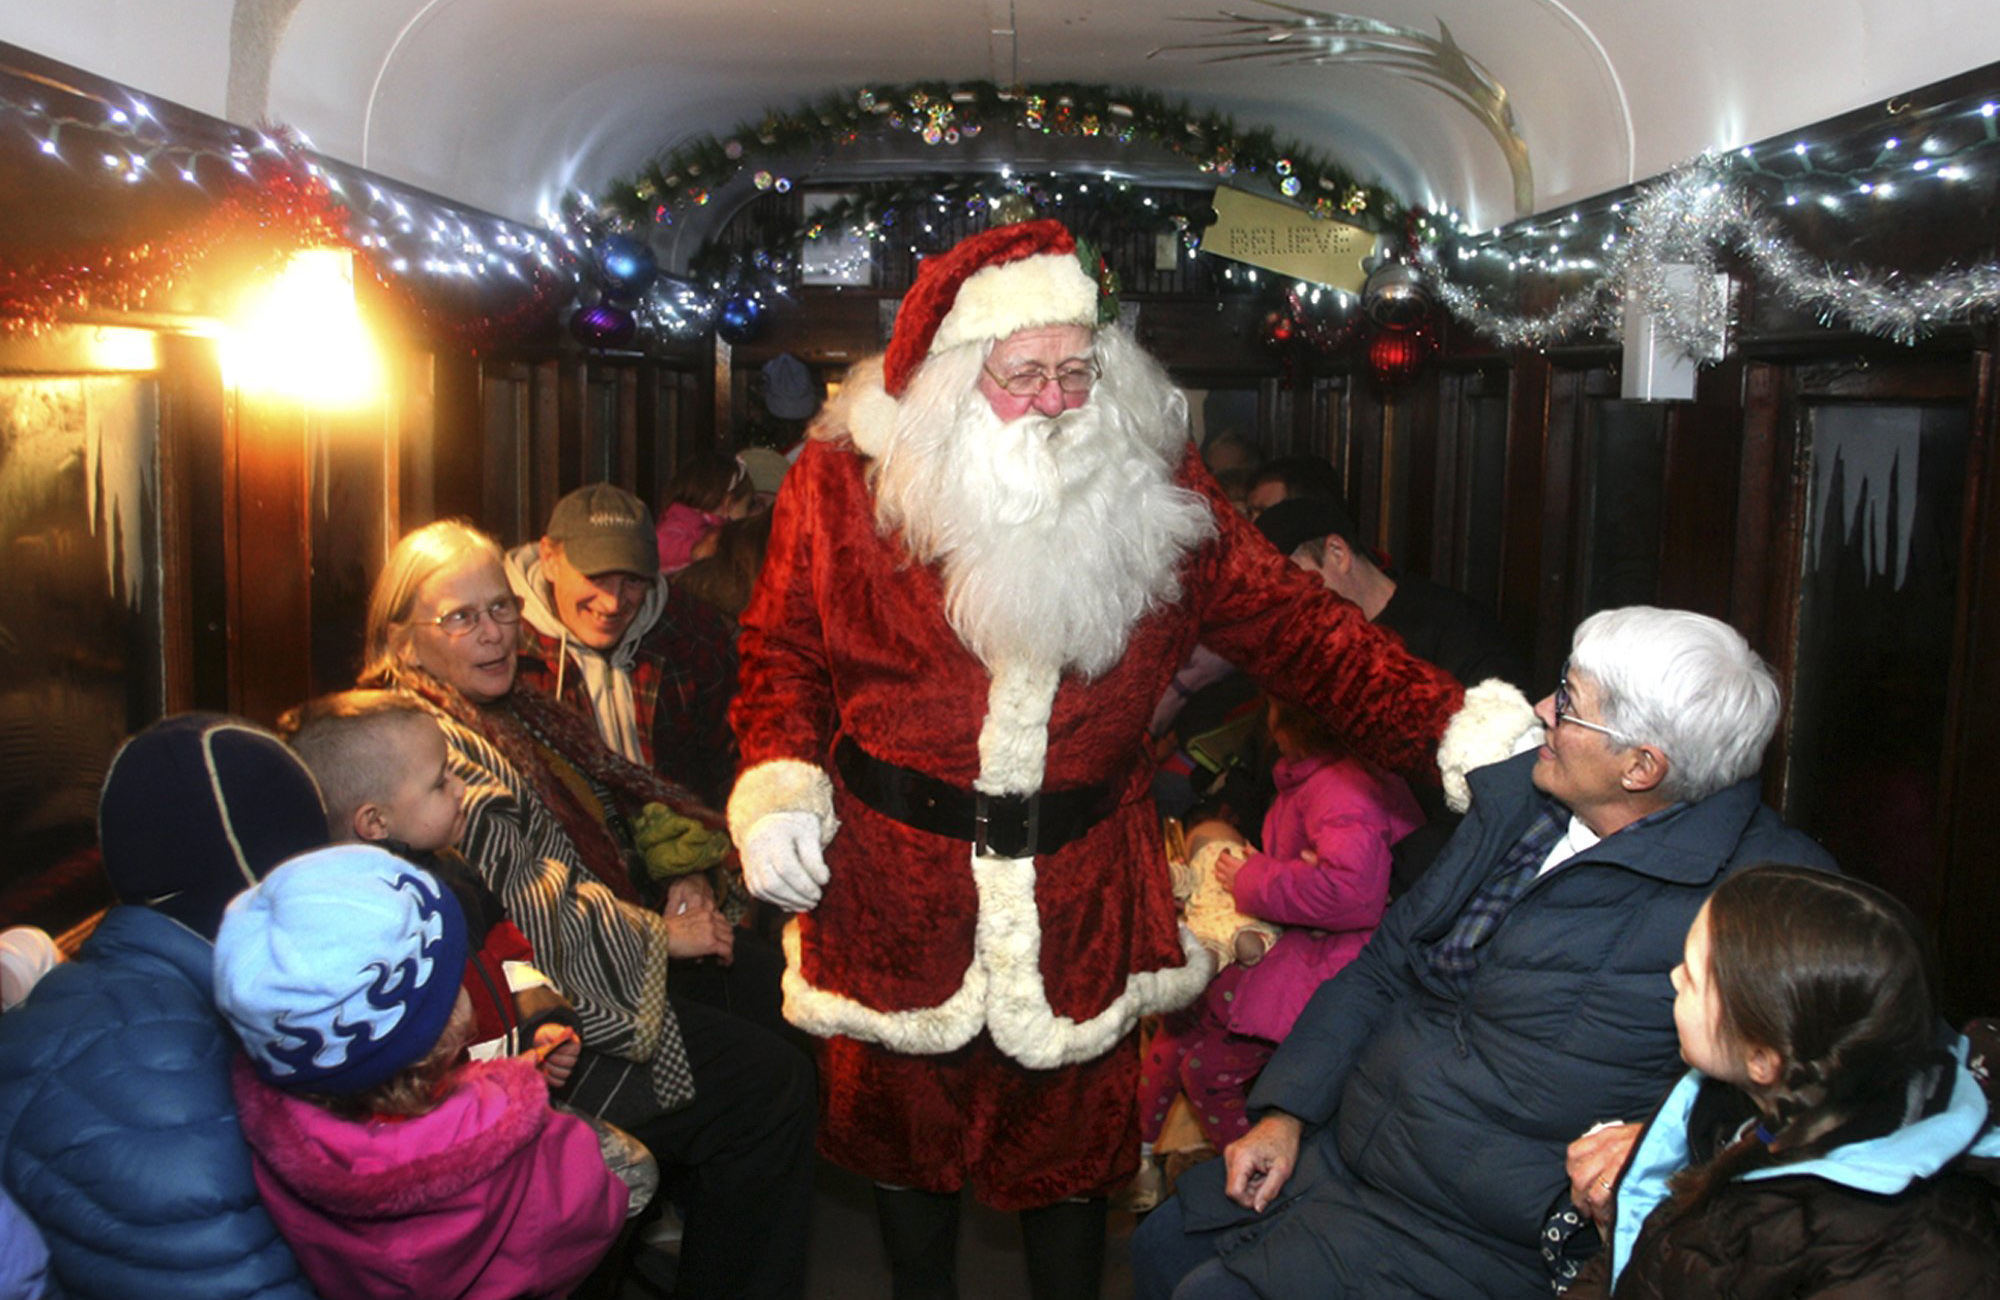 8 Best Polar Express Train Rides for Christmas 2017  Locations of Polar Express Trains